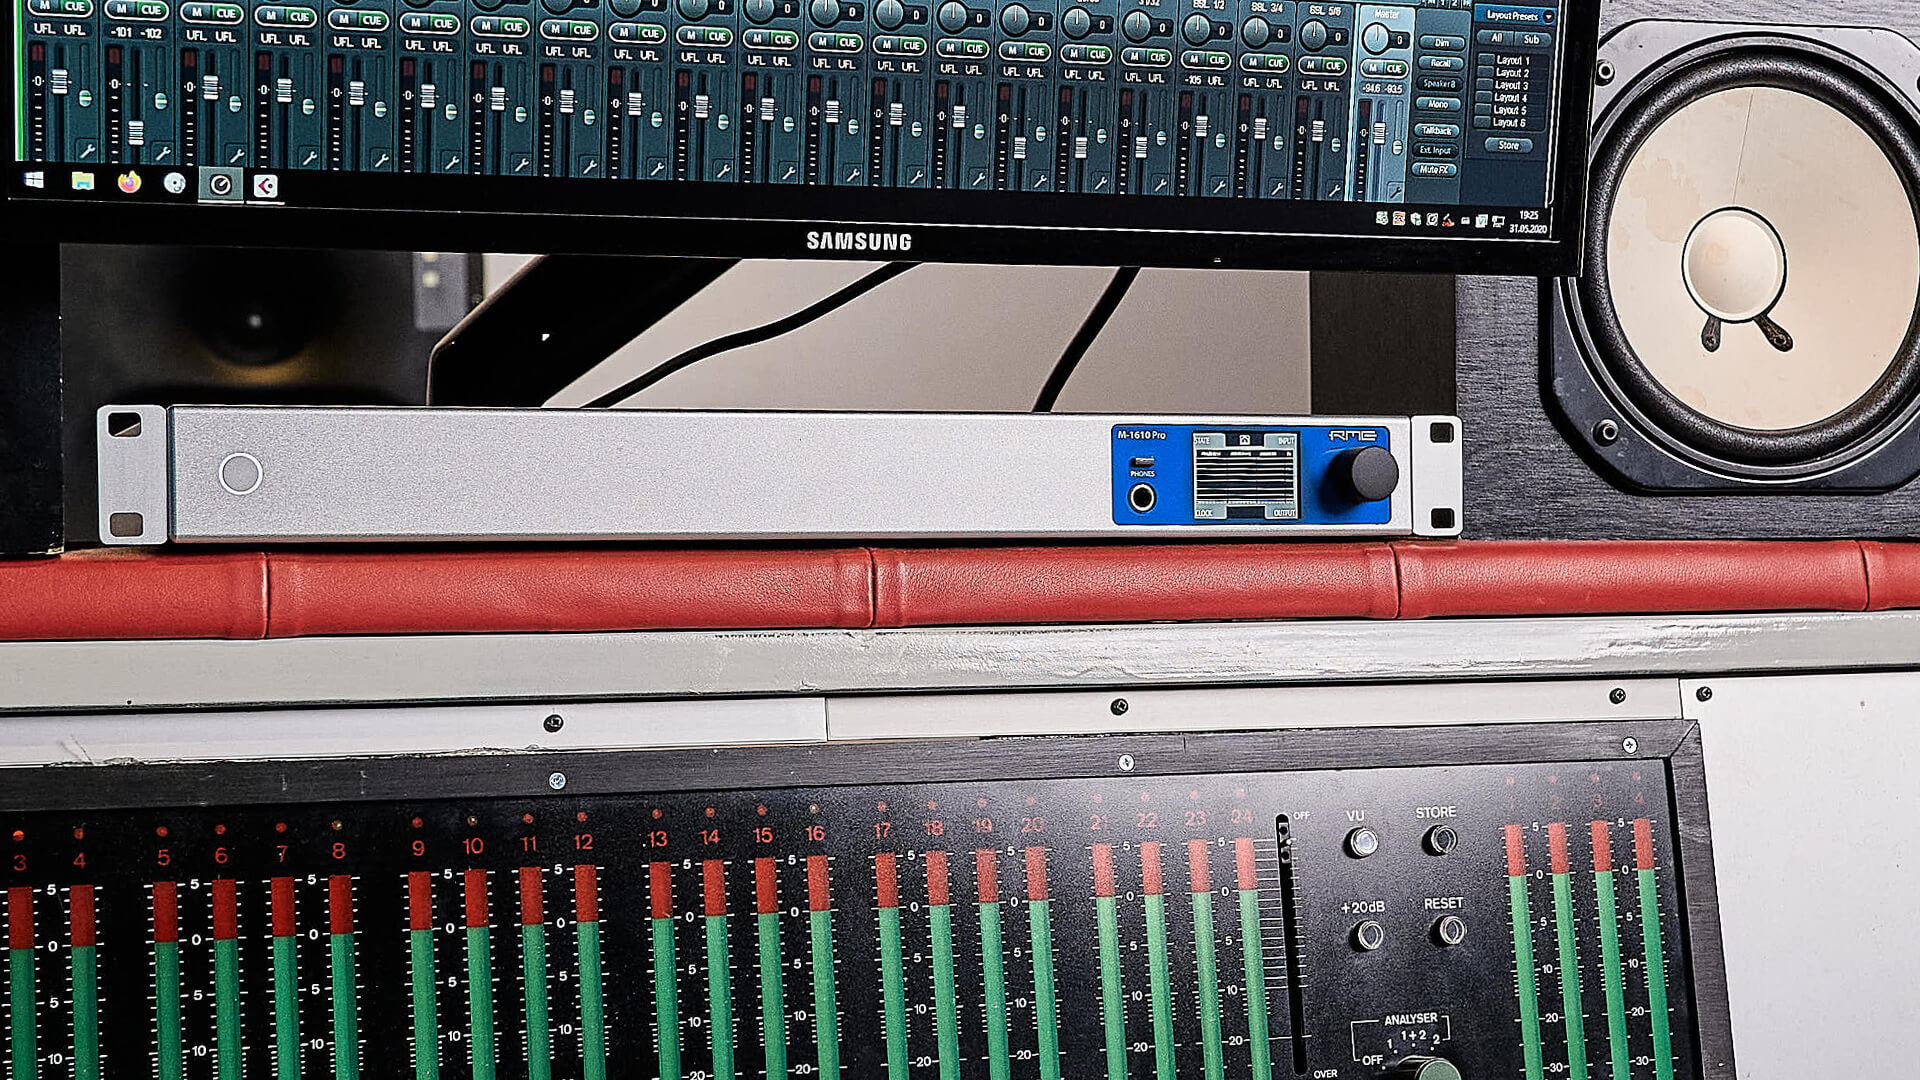 Perfect for recording engineers using a variety of analog effects and instruments.